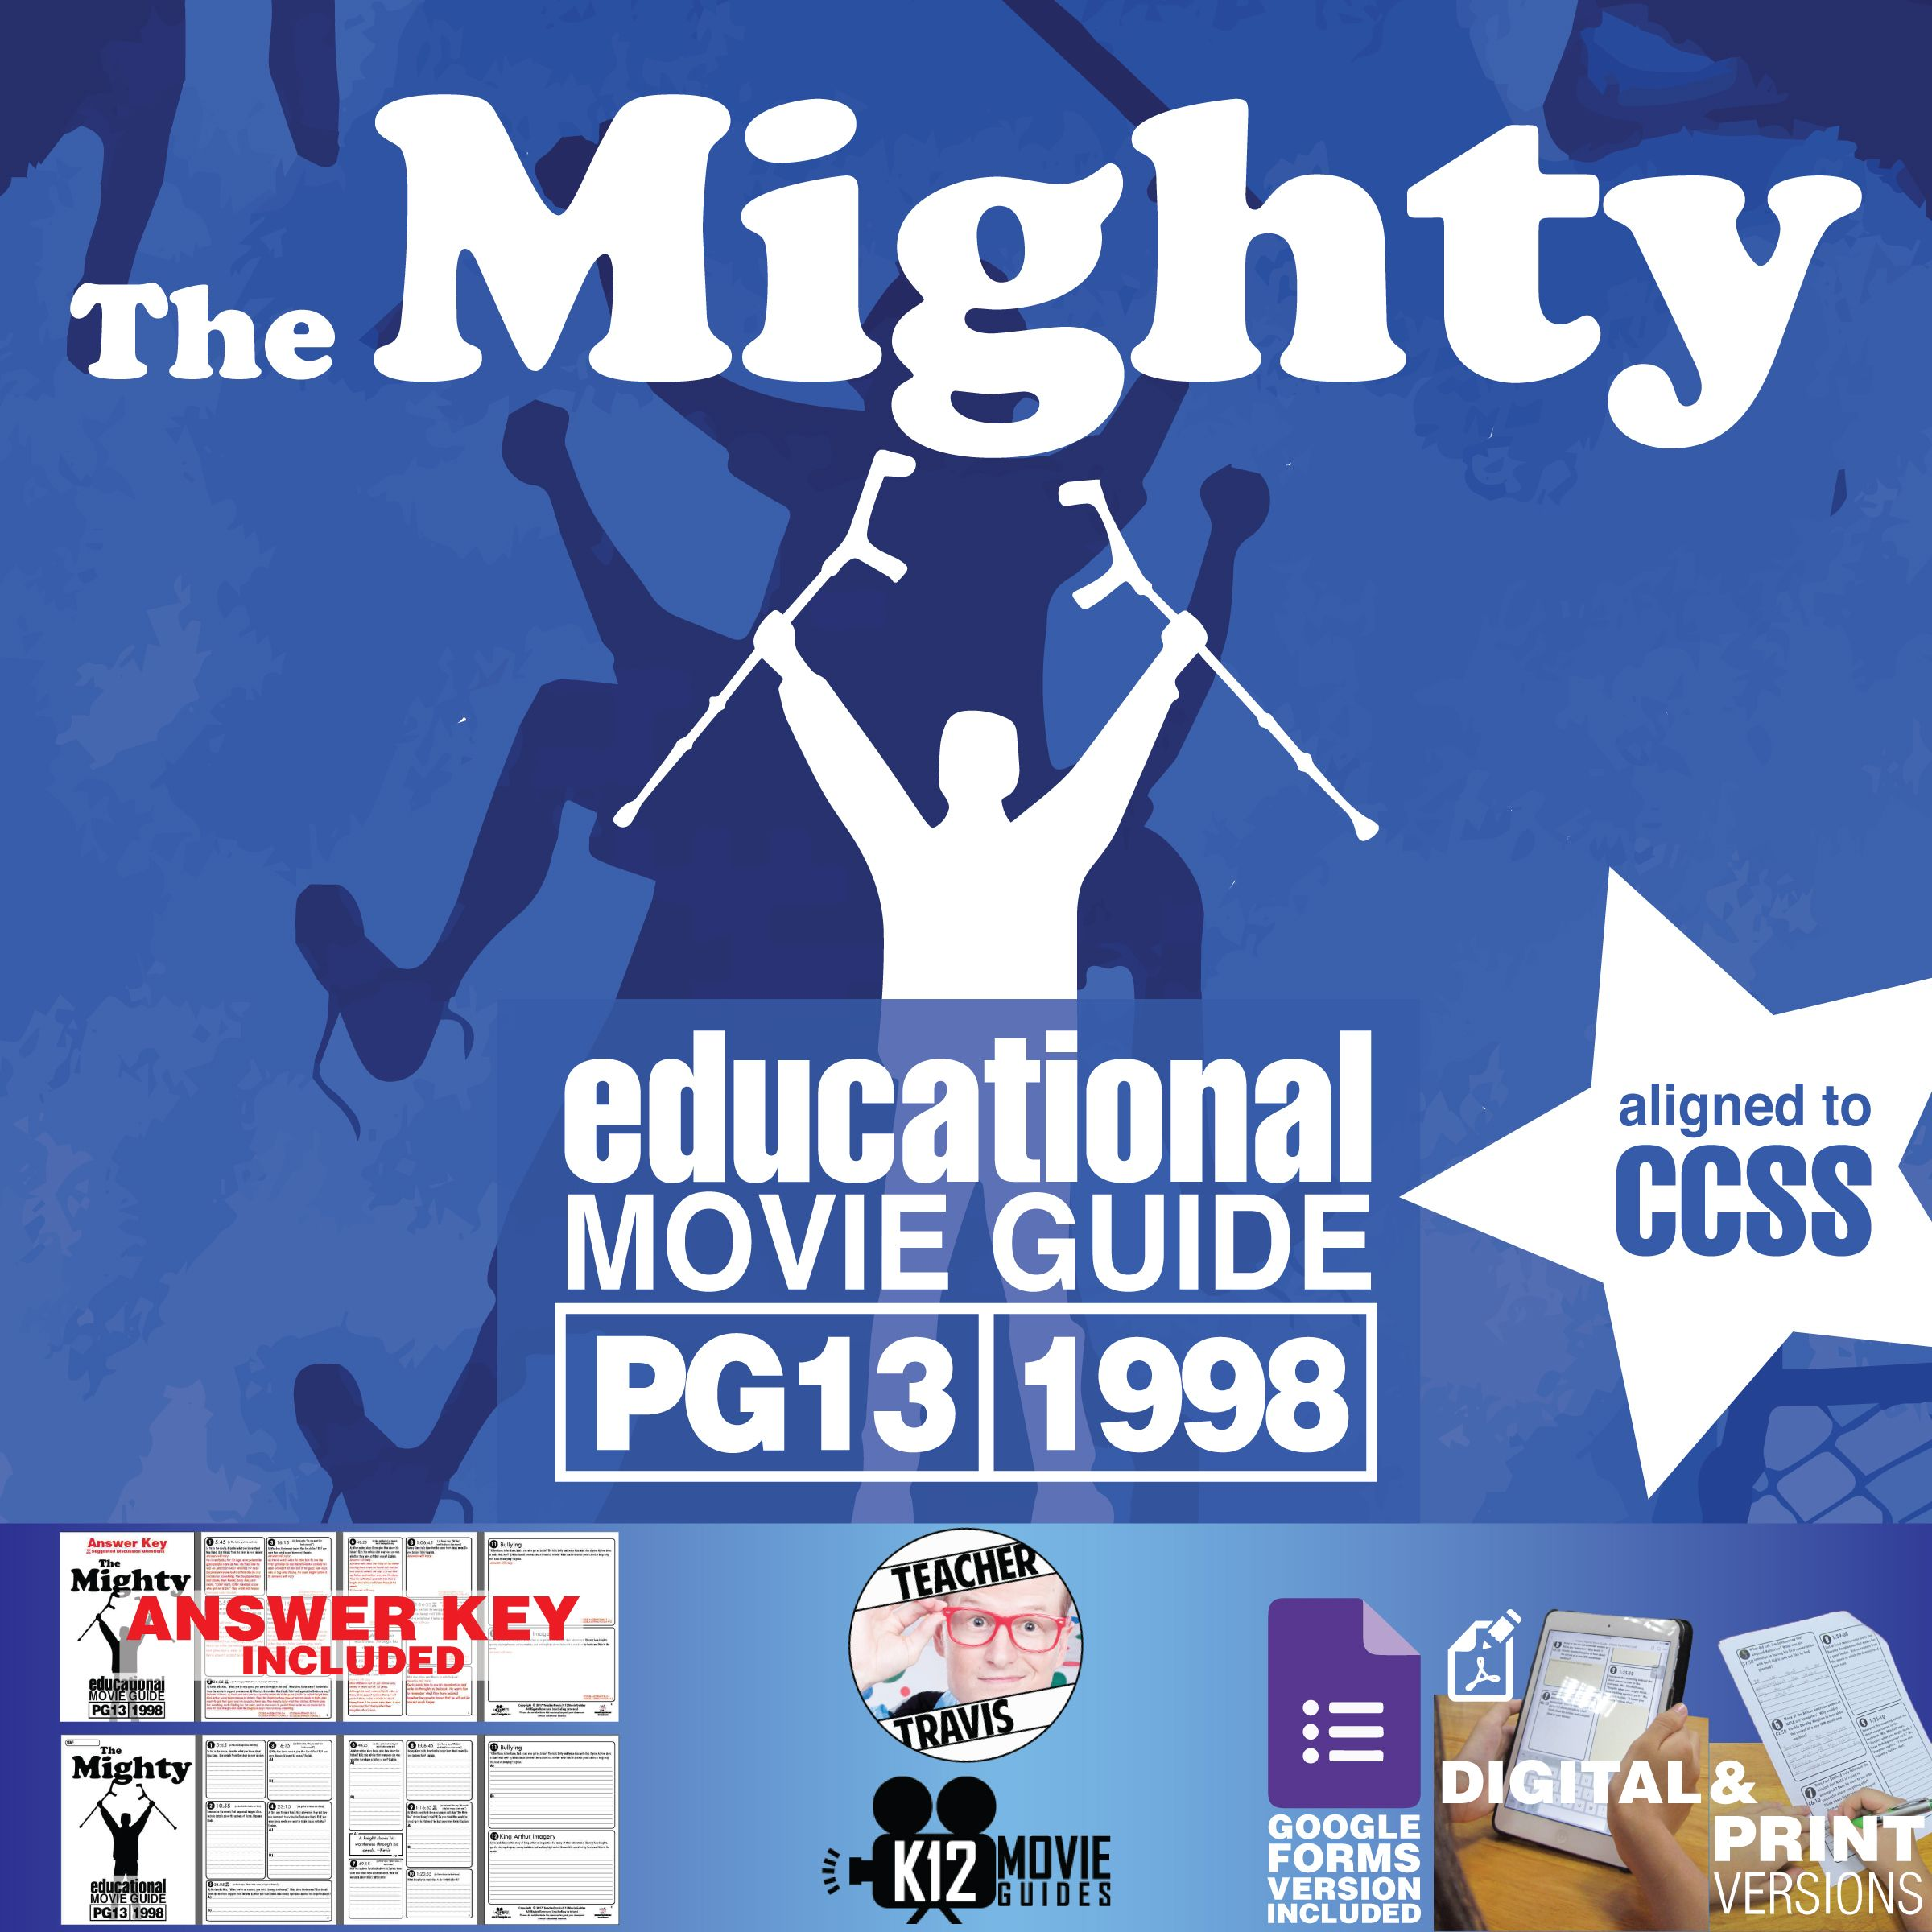 The Mighty Movie Guide